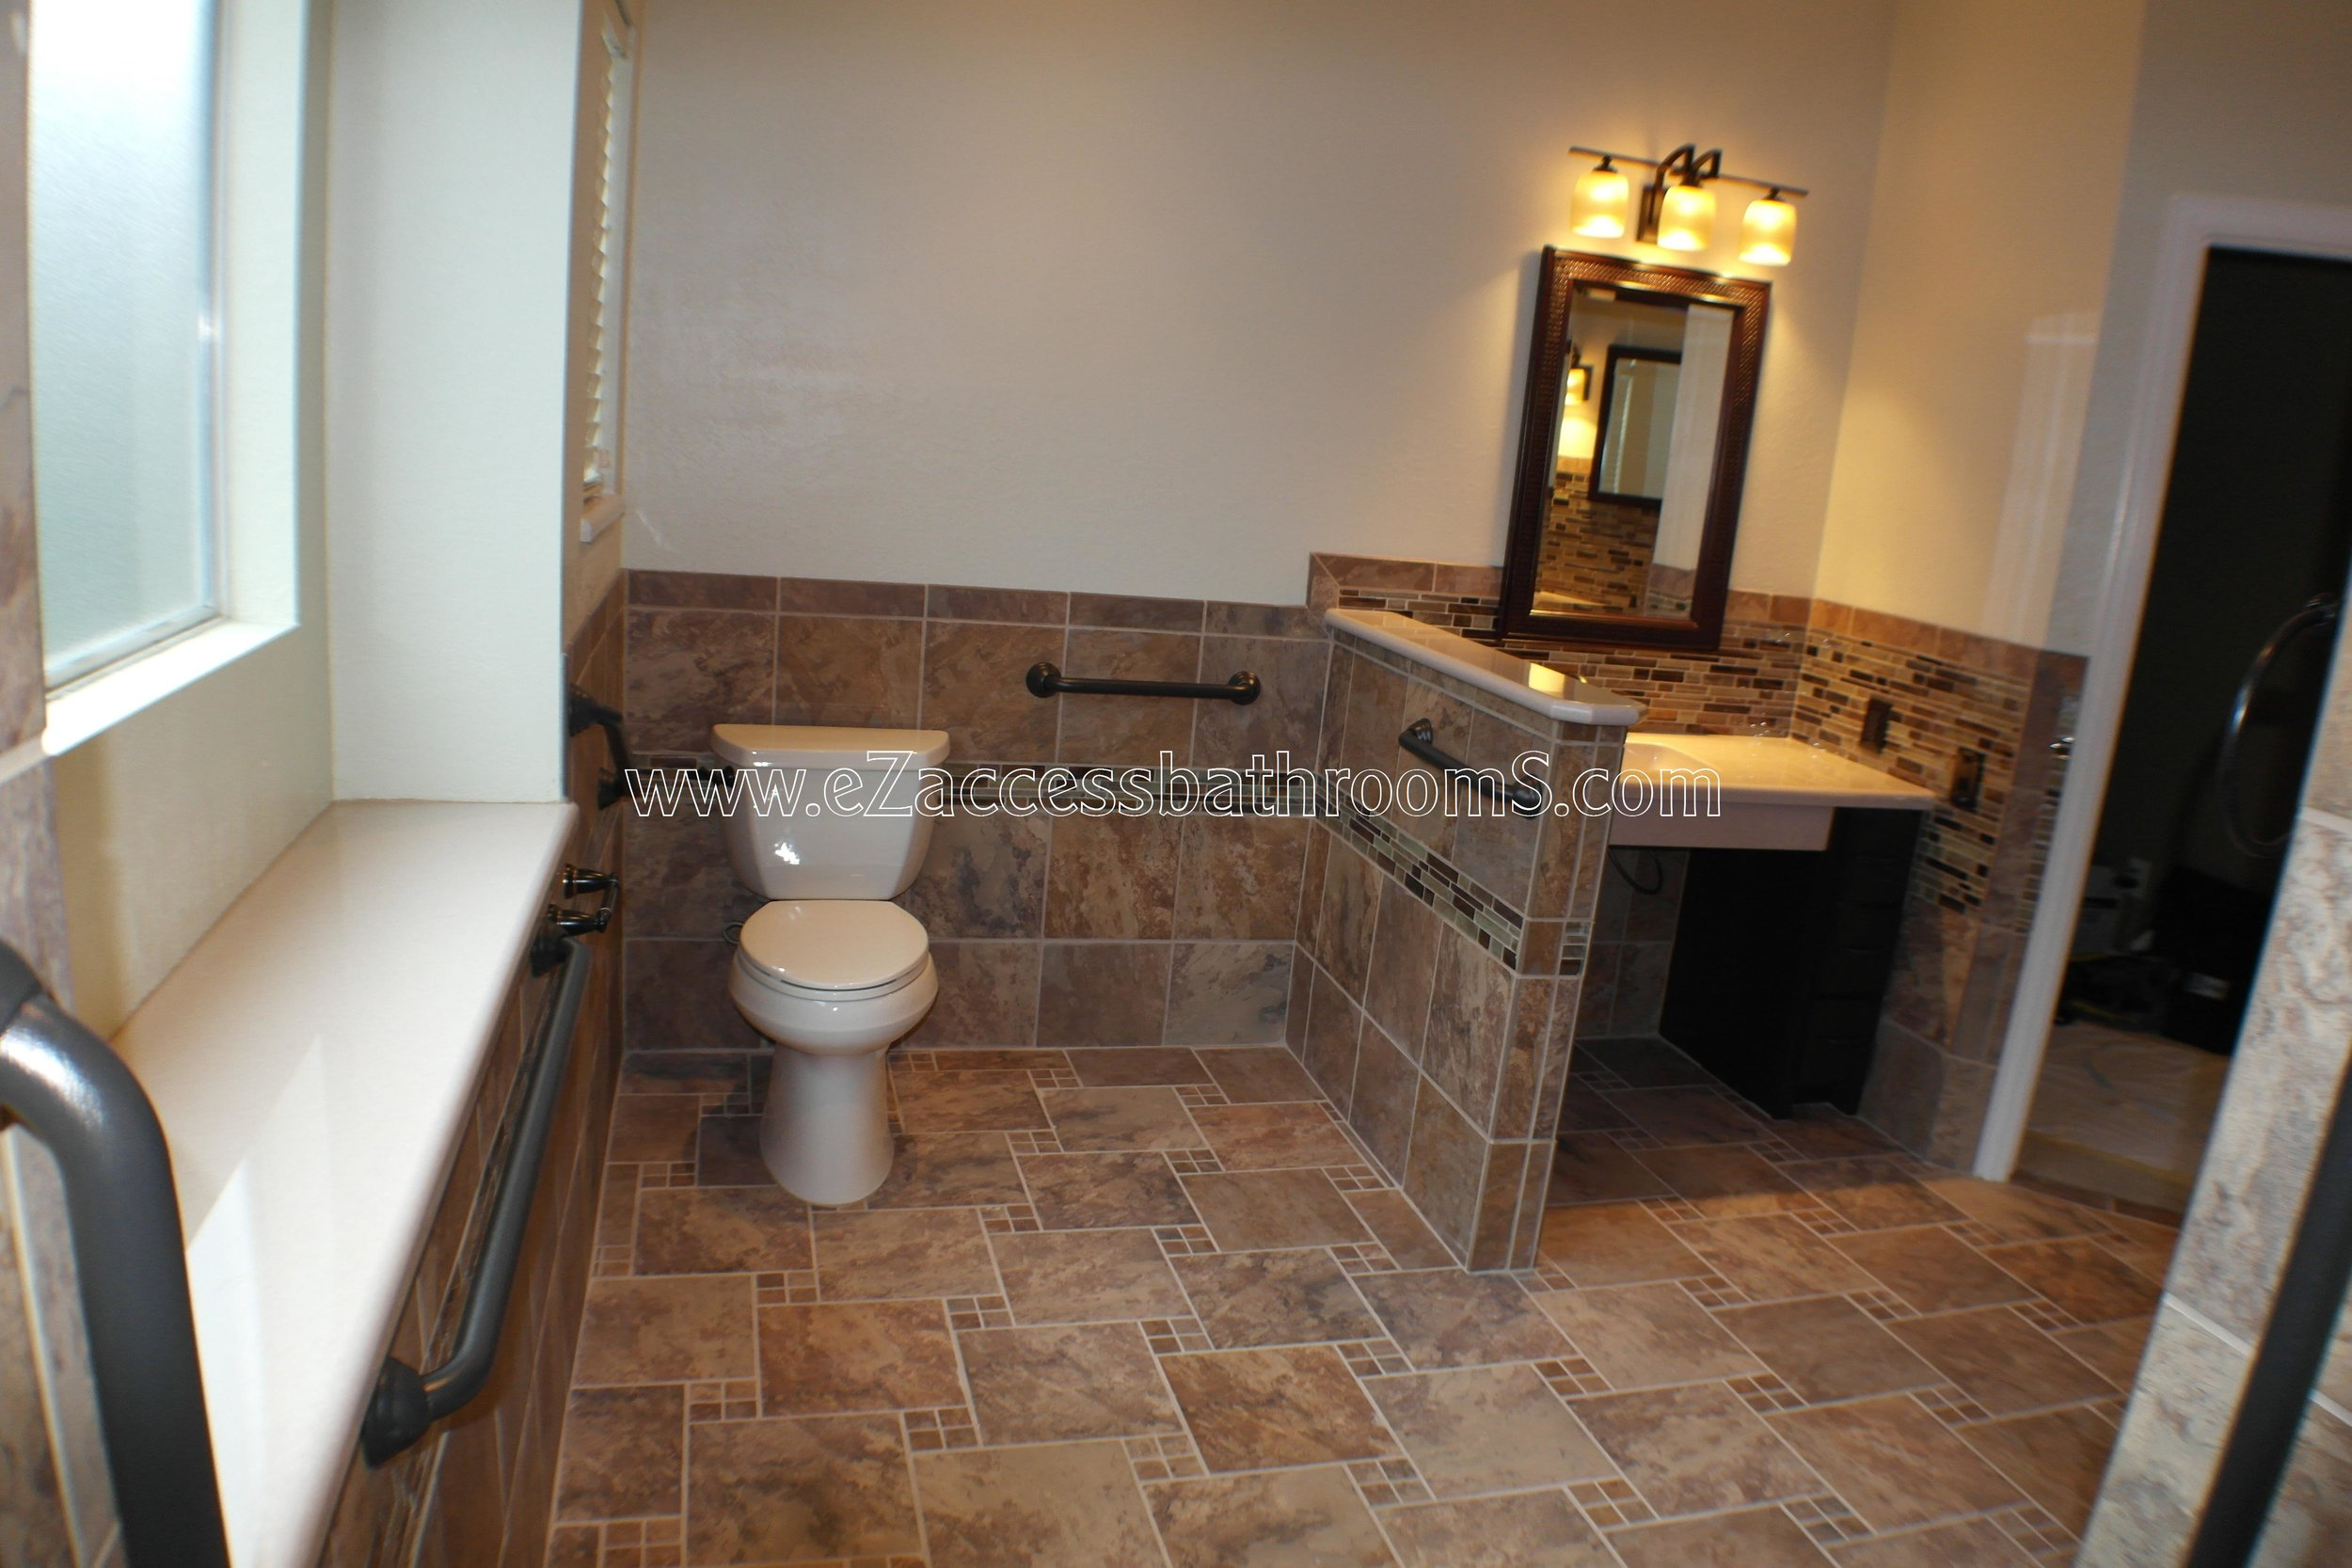 SENIOR FRIENDLY BATHROOMS EZACCESSBATHROOMS.COM 832202843 MOORE 361.JPG